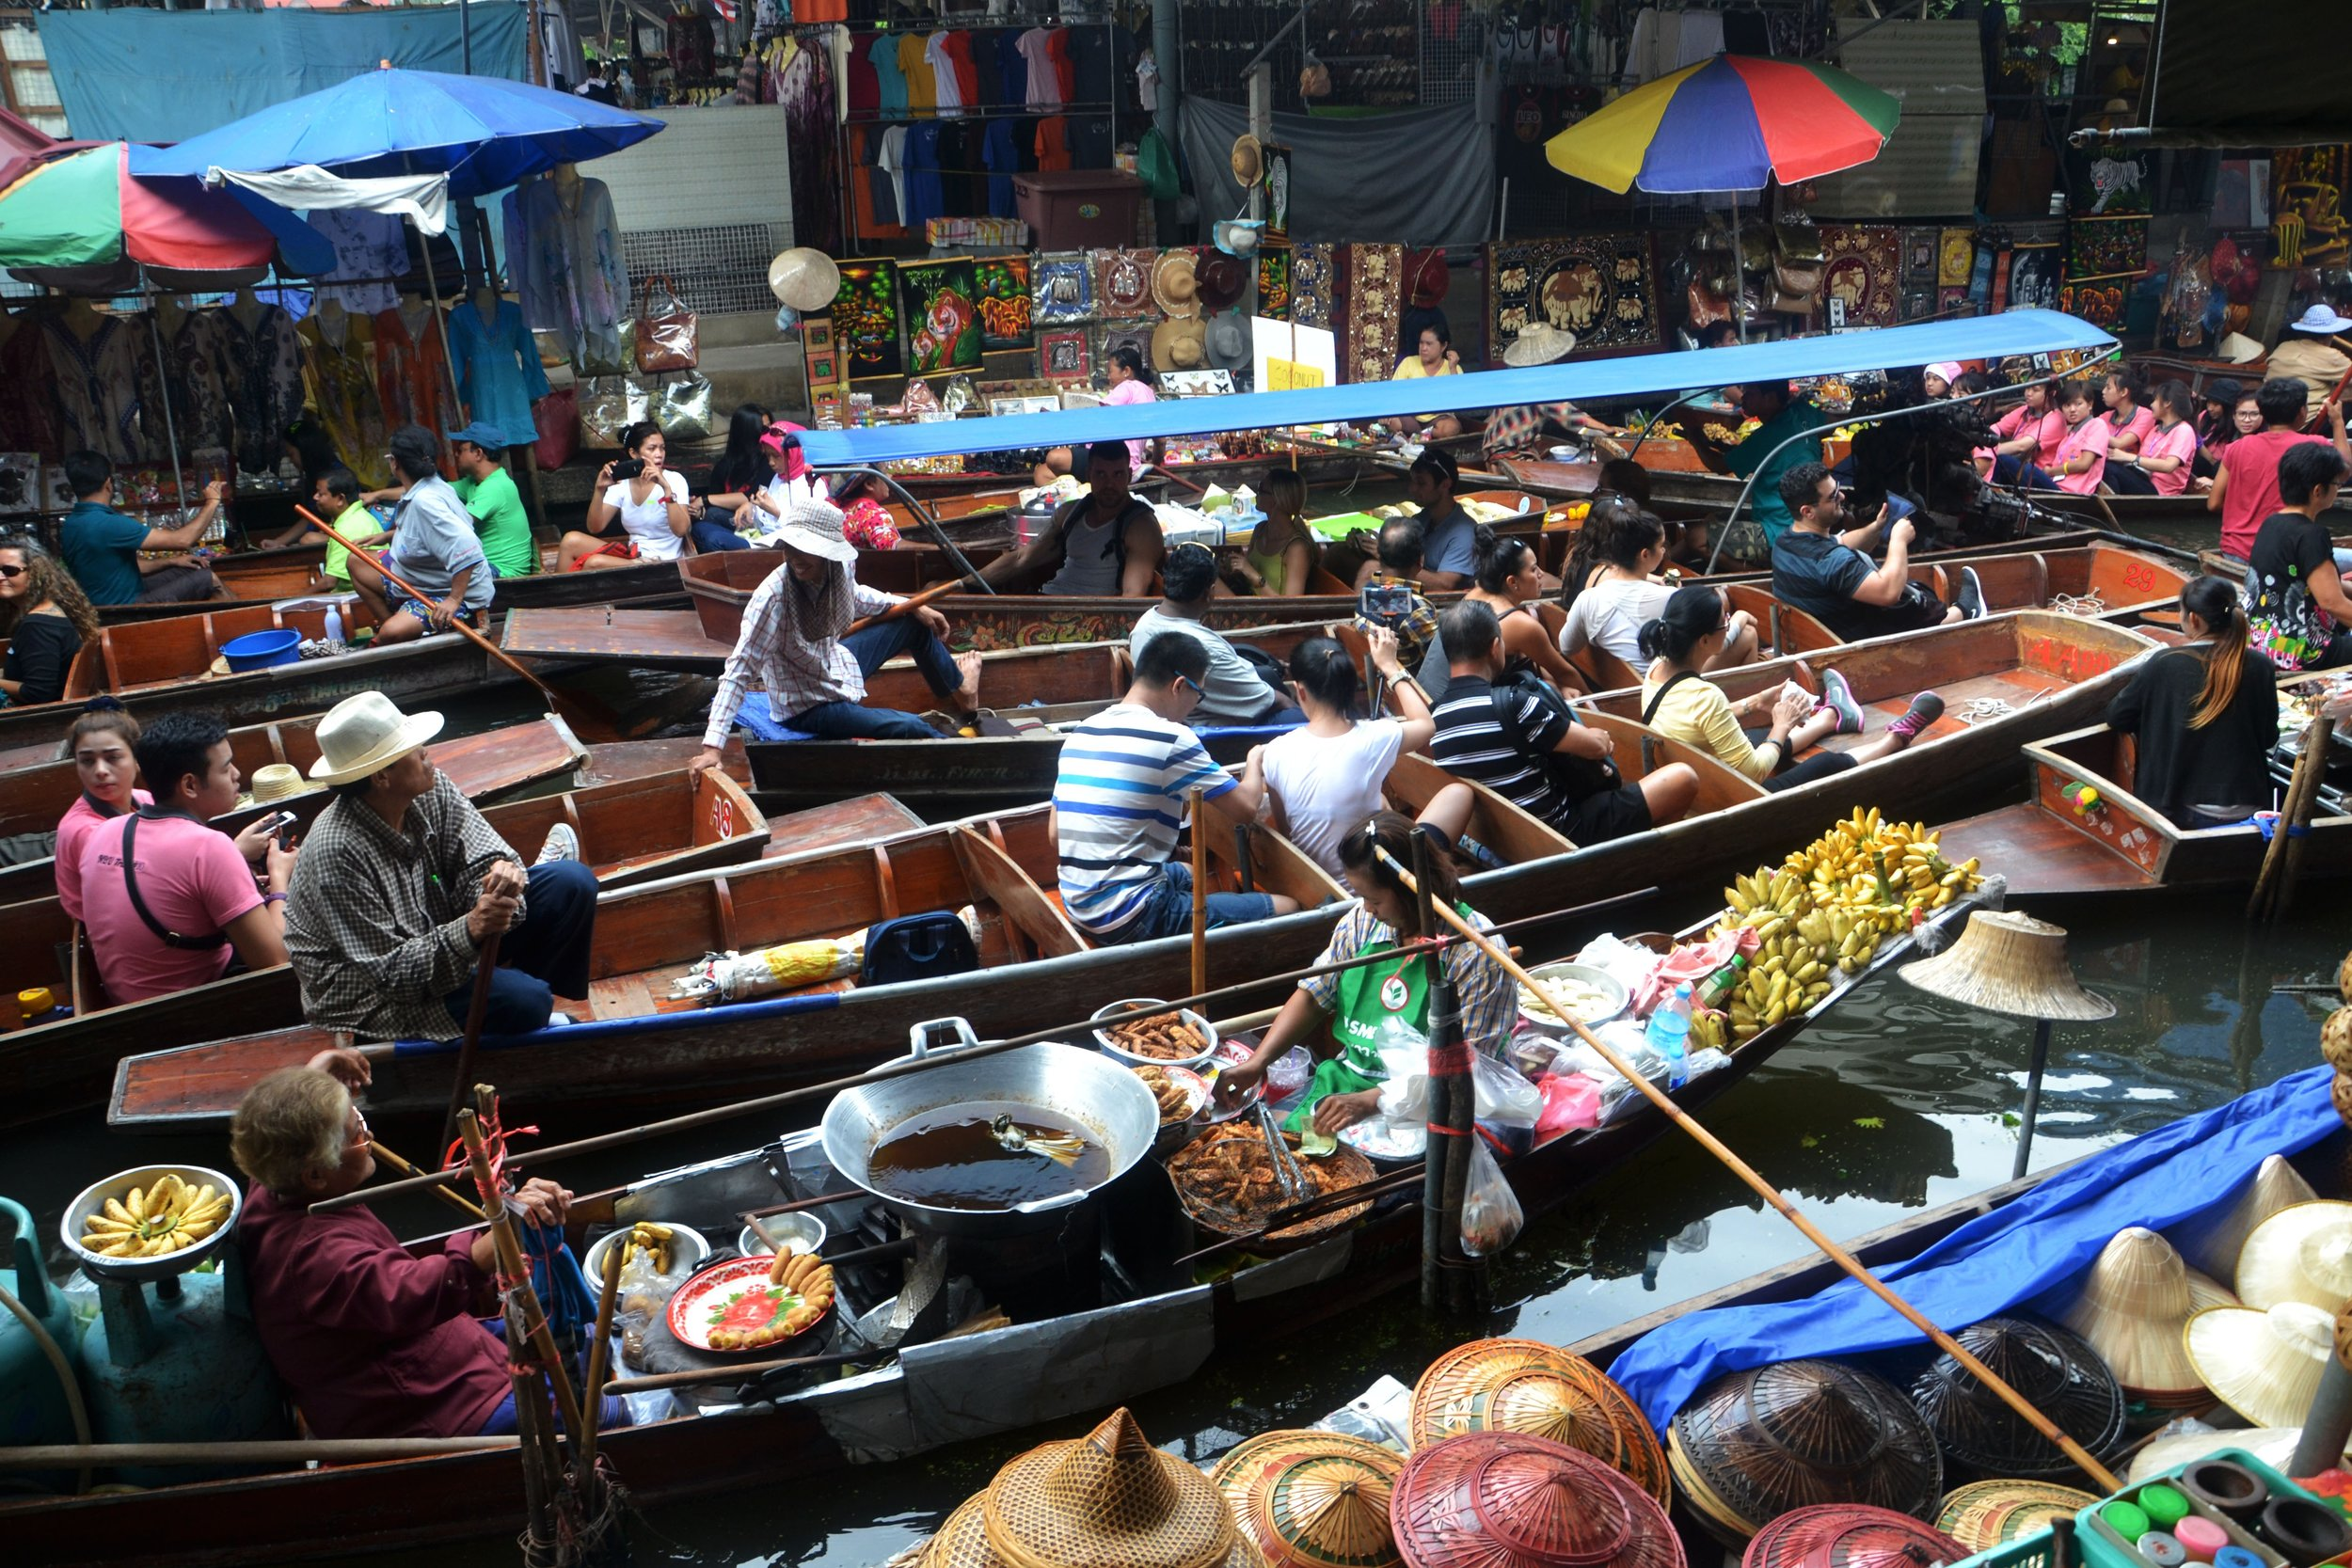 Travel tip #1: Be prepared to haggle!